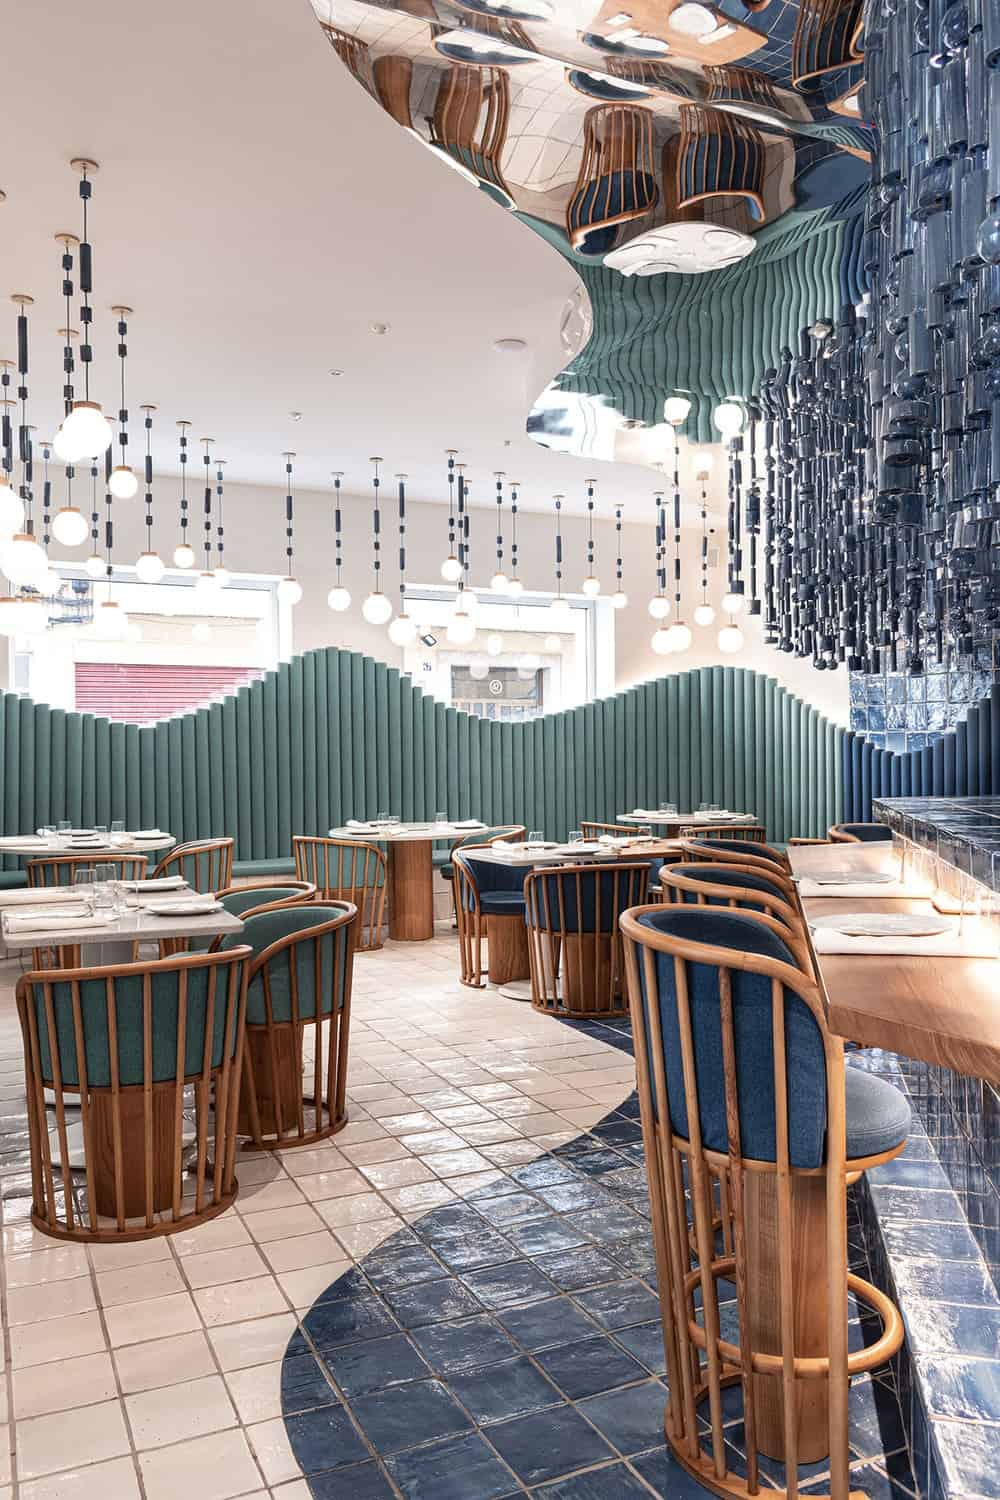 This view shows more of the curved patterns of the booths that matches with the flooring and ceiling patterns.